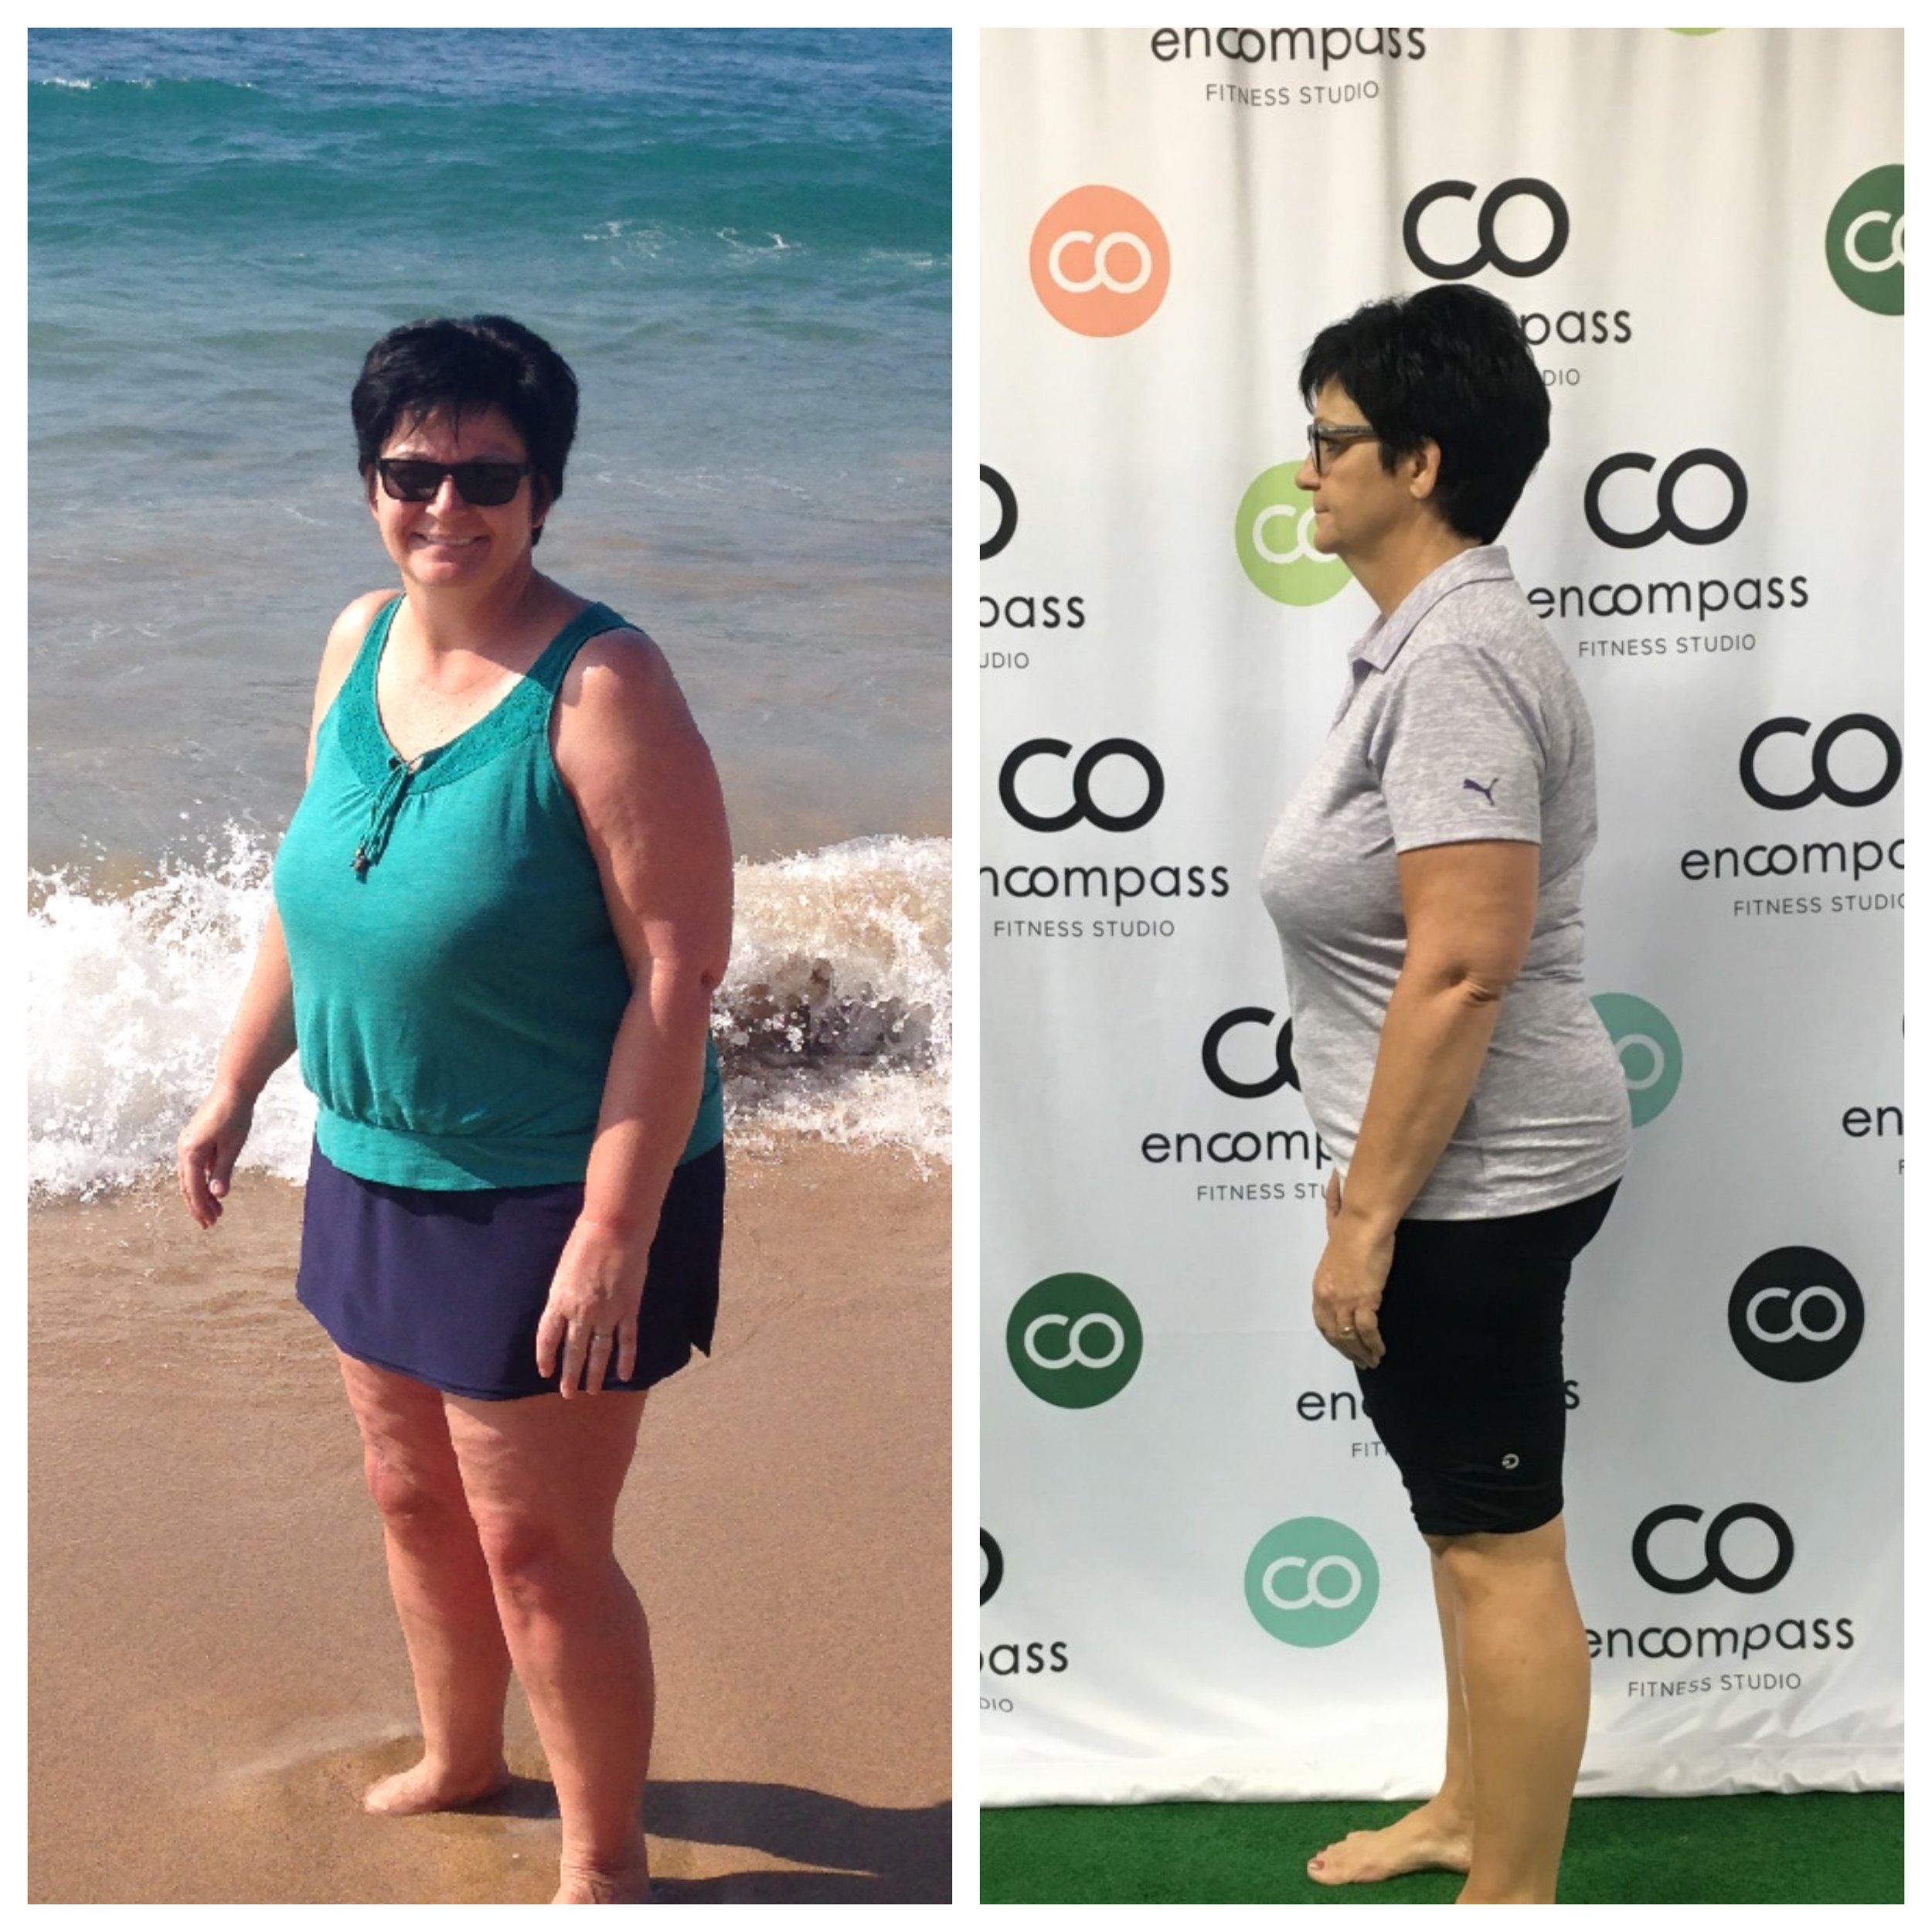 Sharon joined Encompass just over one year ago to help her recover after knee surgery. Now, she is stronger than ever, has lost over 30 pounds of fat and 18 inches, and has gained back the confidence and energy to approach life without fear of her abilities holding her back!